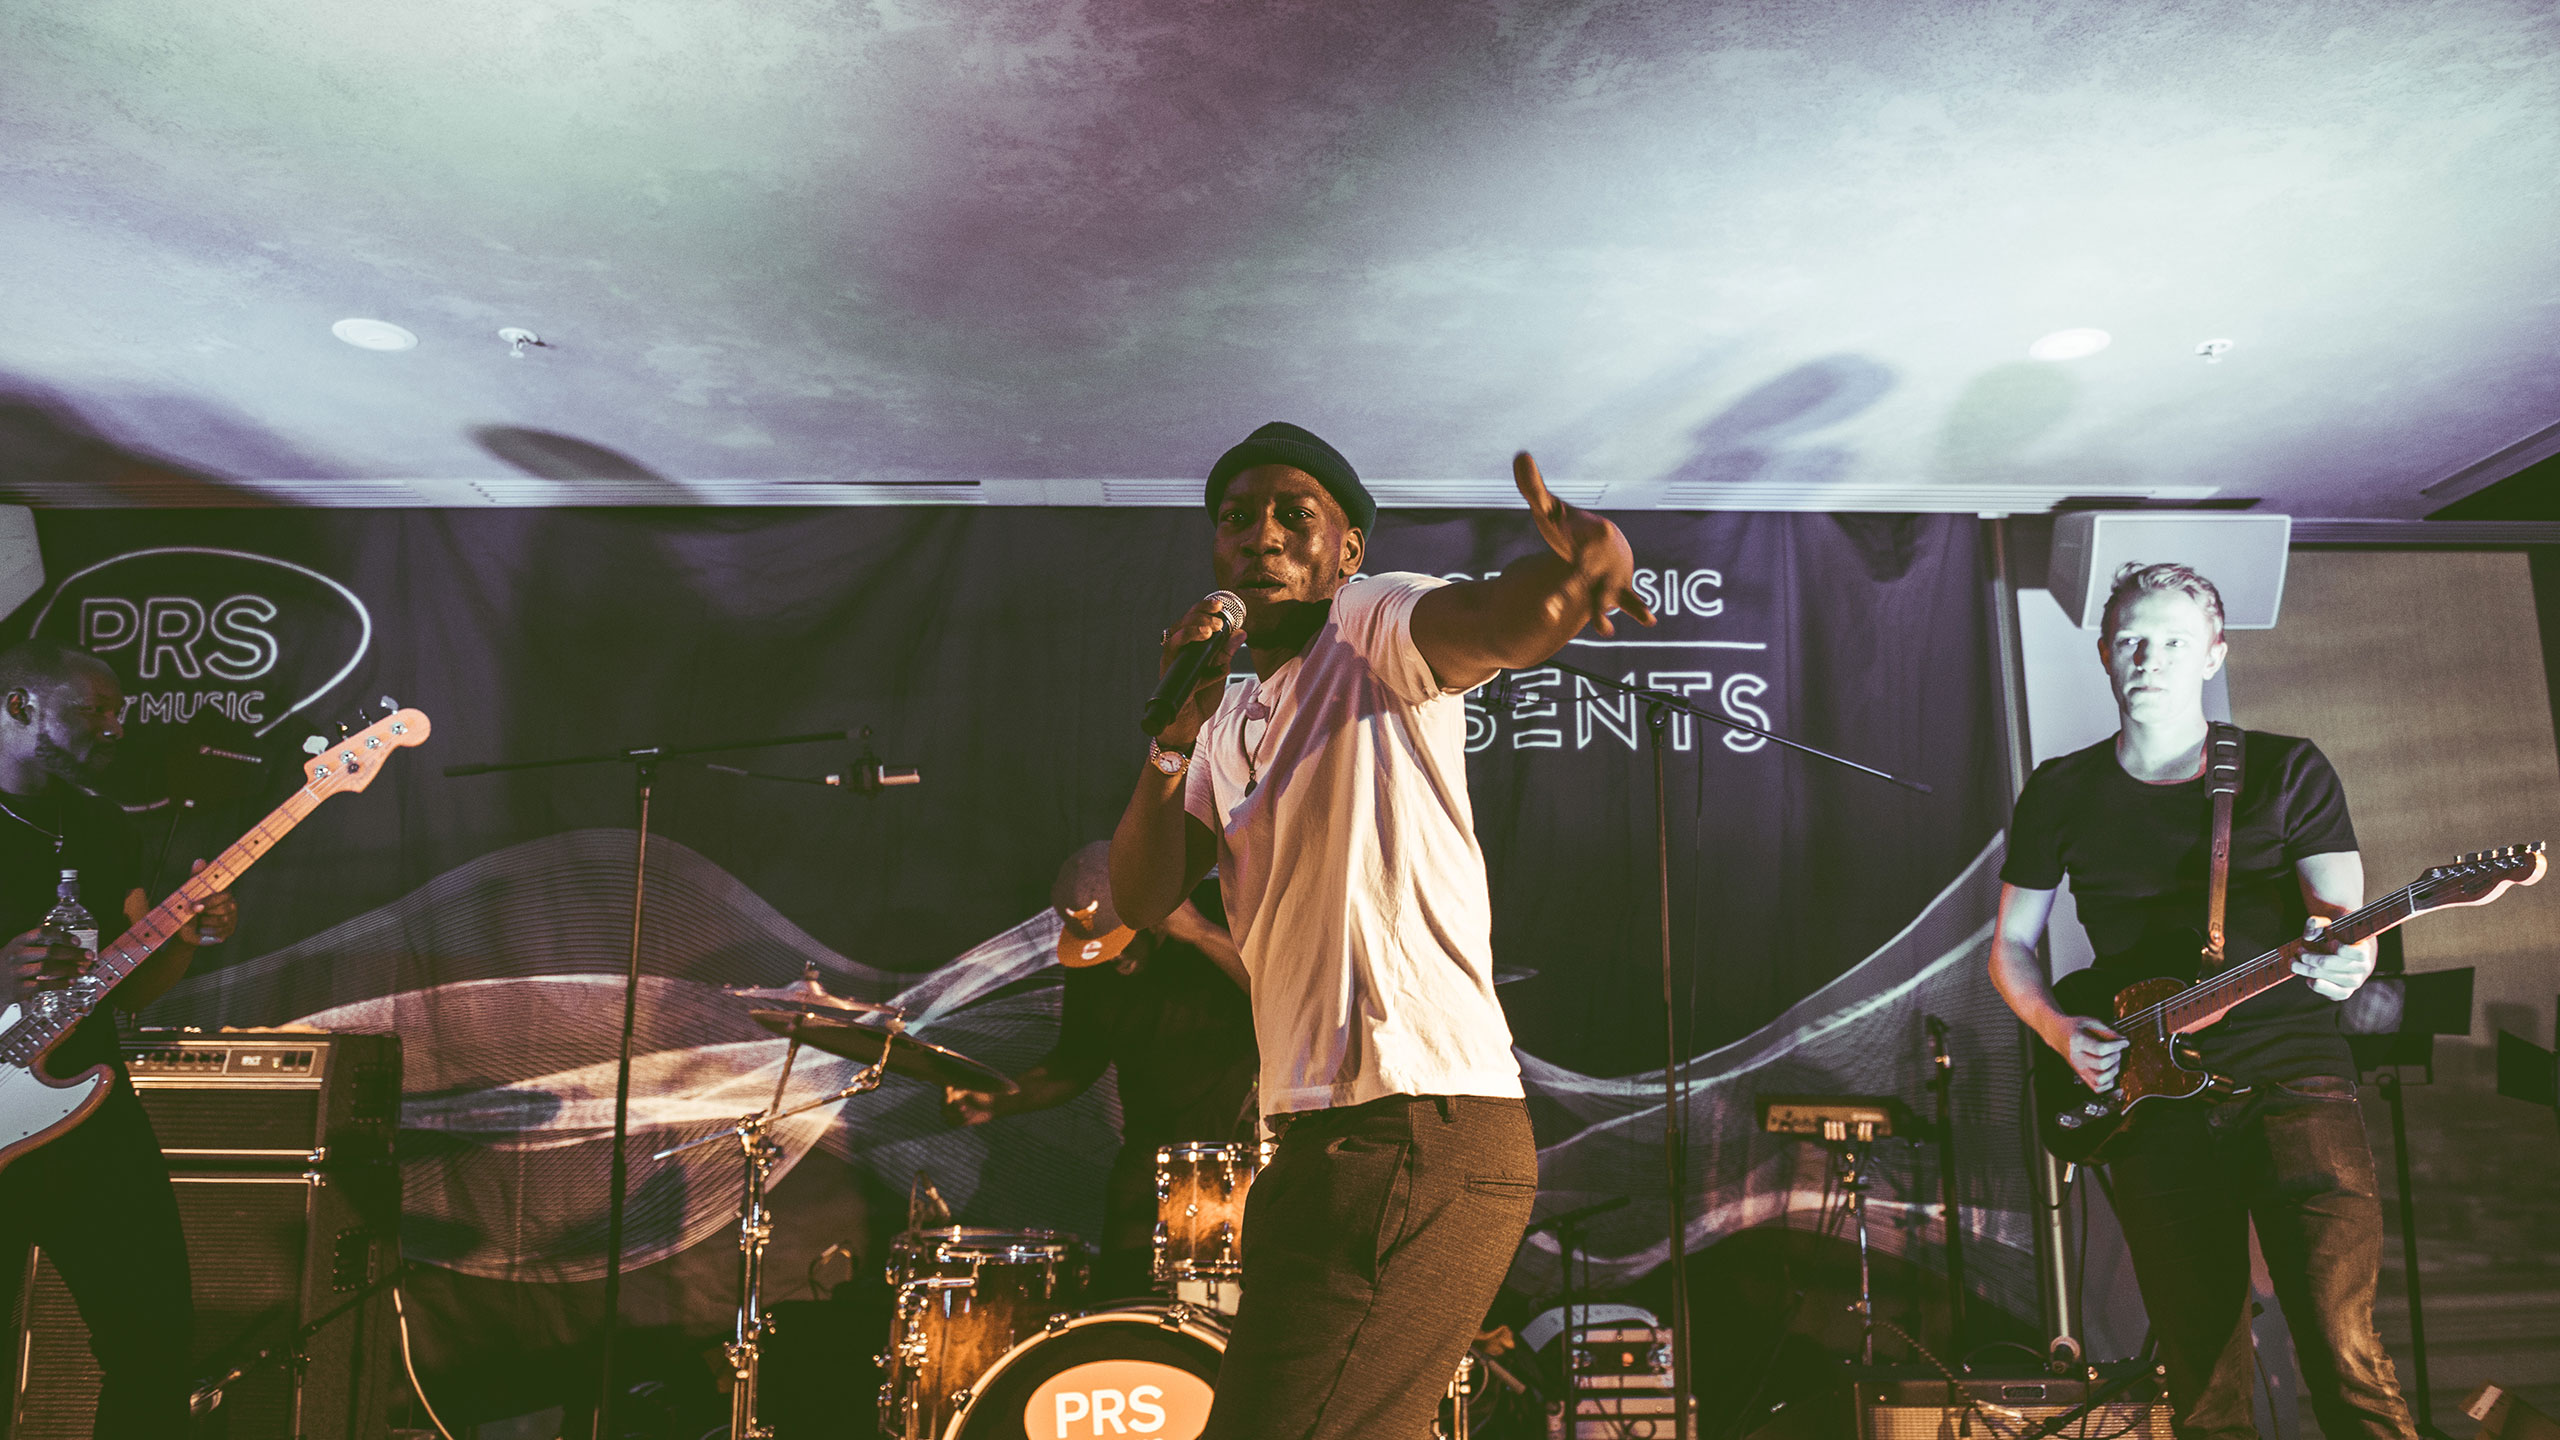 Tiggs Da Author points at the crowd during his performance at PRS Present, wearing a white t shirt, as his live band plays behind him